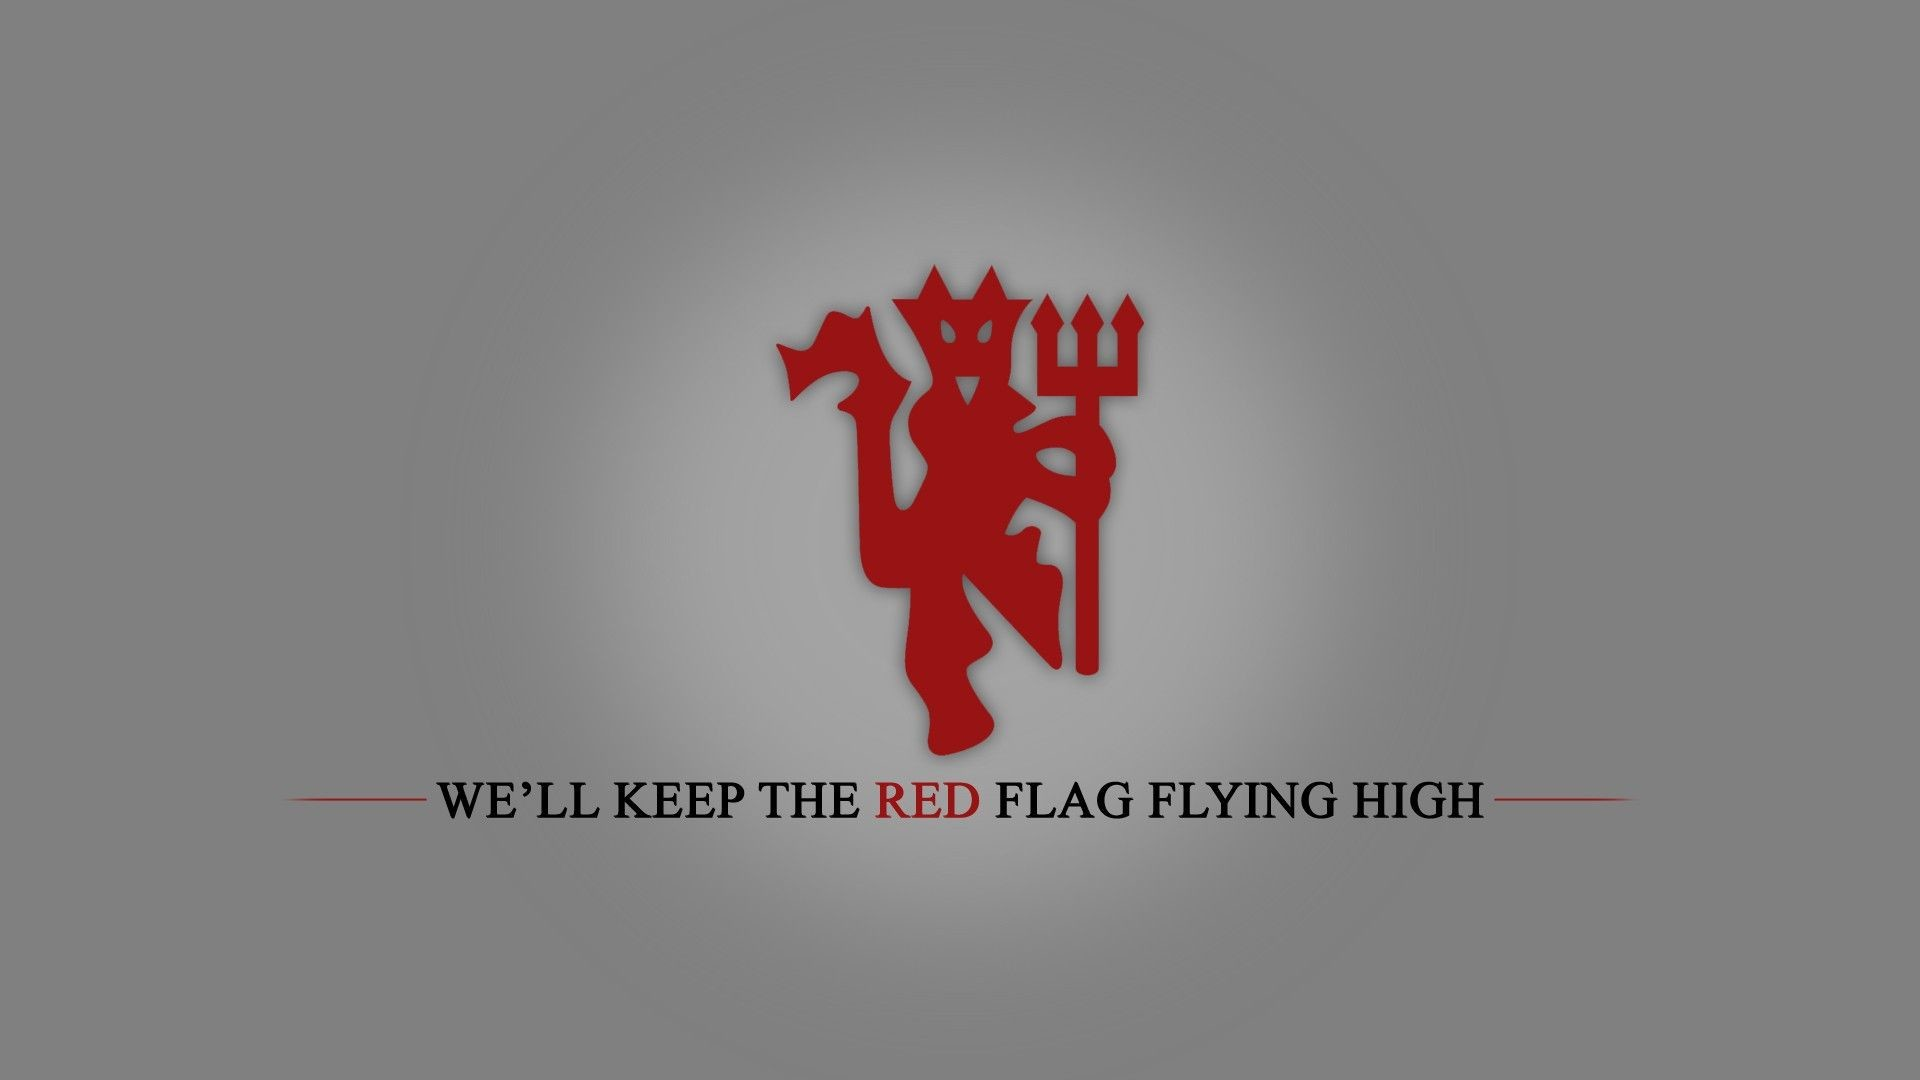 manchester united wallpapers hd 1080p impremedianet